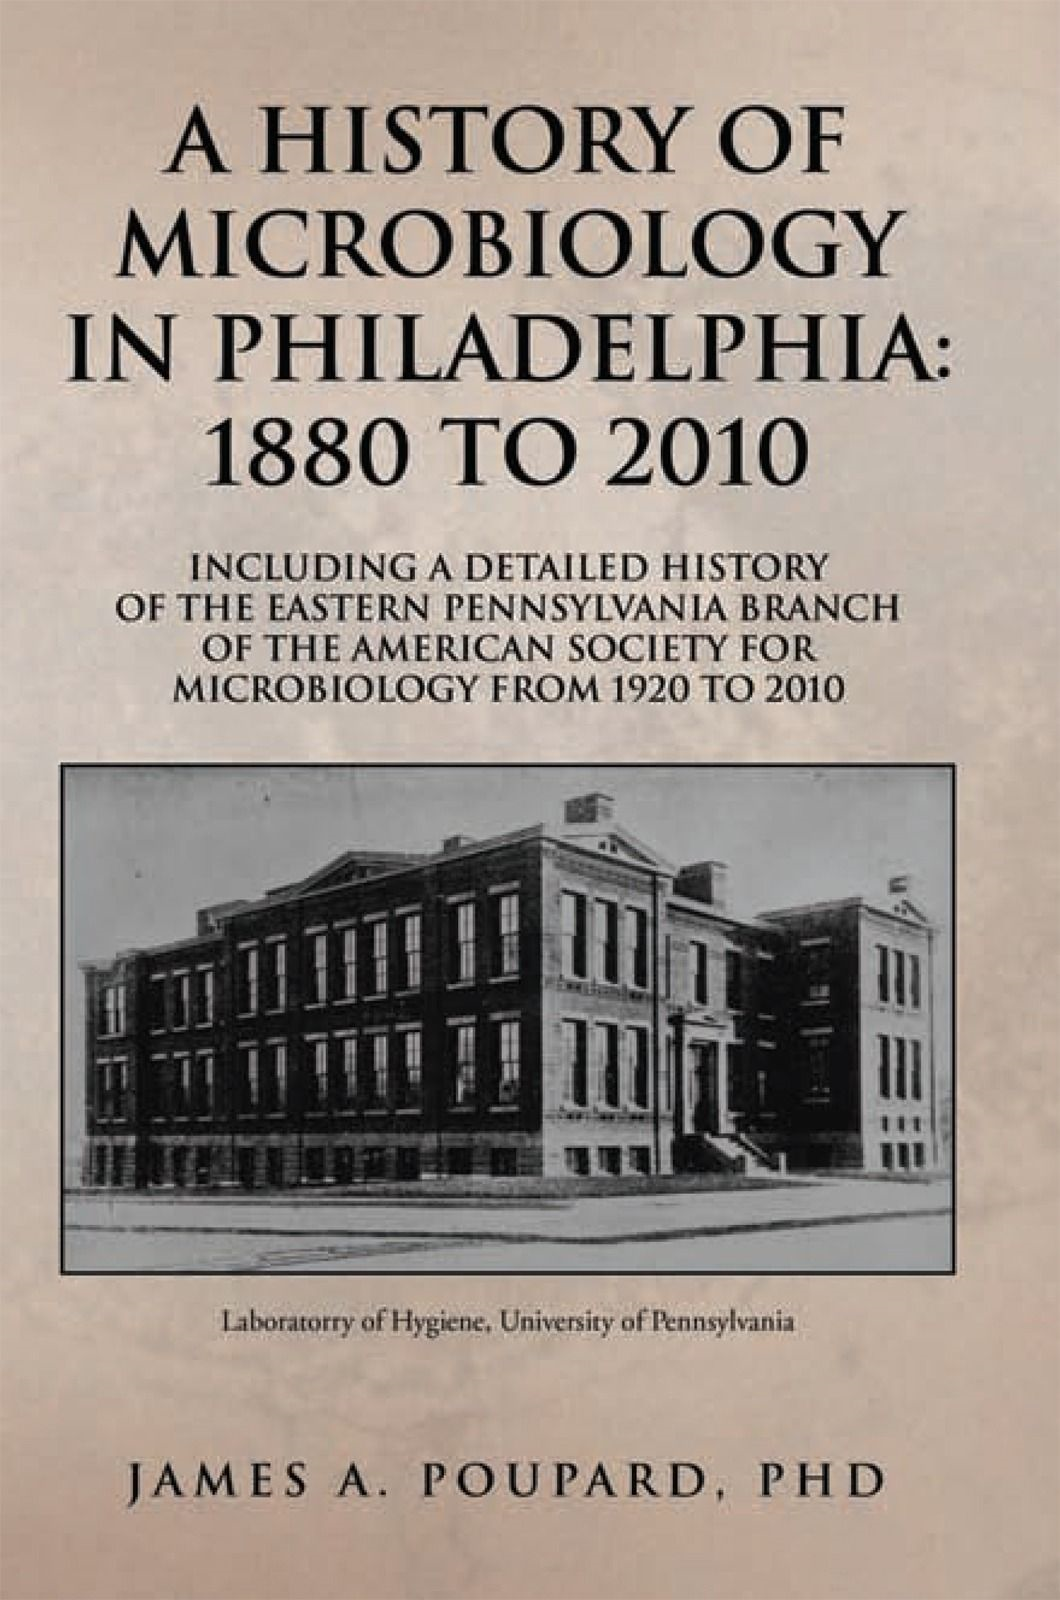 A HISTORY OF MICROBIOLOGY IN PHILADELPHIA: 1880 TO 2010